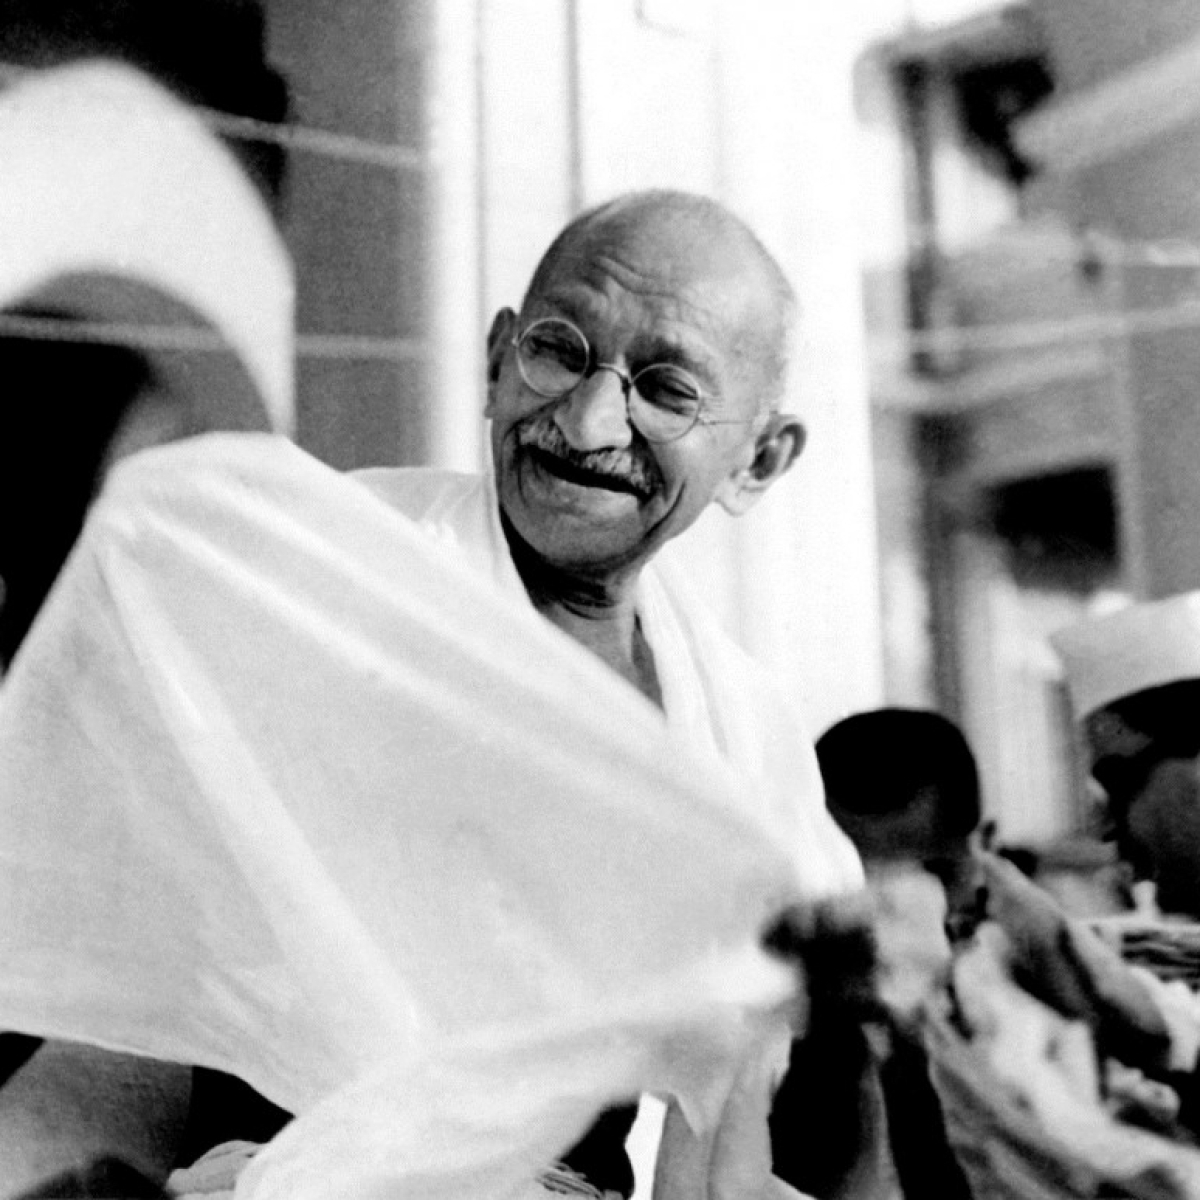 'A nation is dumb without a national language': Twitter irked as Panchayati Raj Ministry shares quote attributed to Mahatma Gandhi